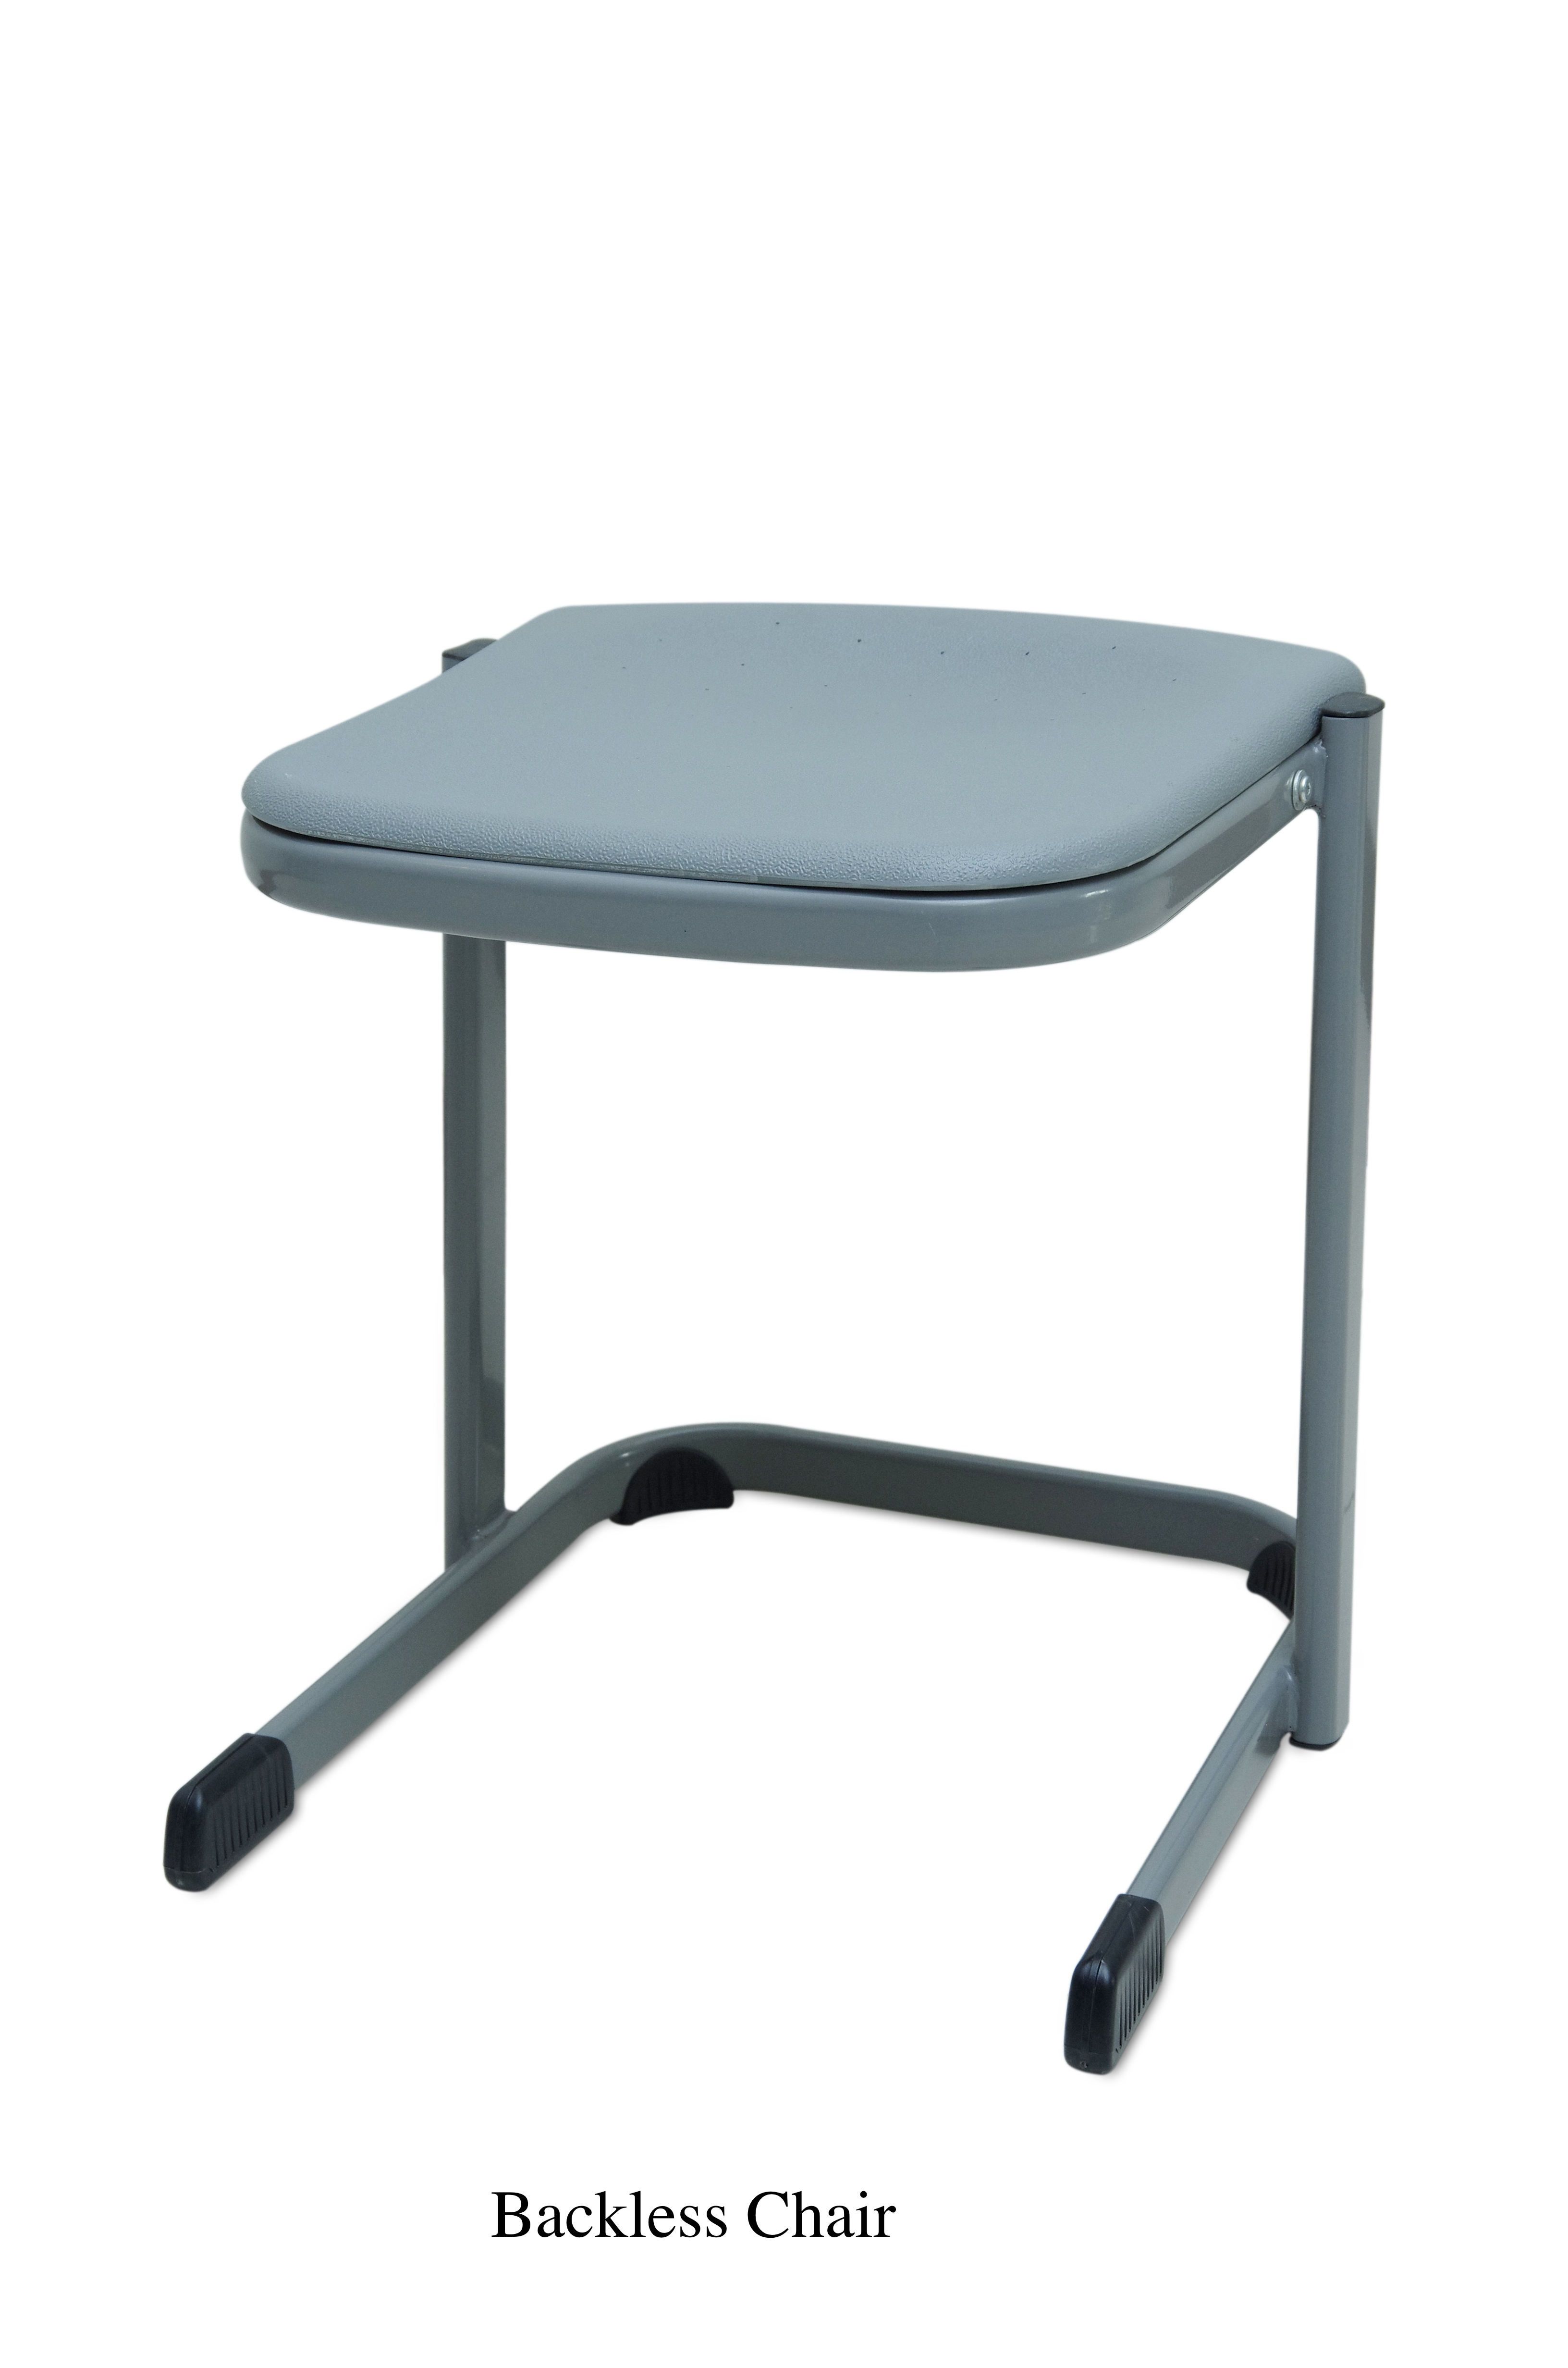 BACKLESS CHAIR 600x906 - LAB BACKLESS CHAIR  sc 1 st  Educational Toys in Pakistan & LAB BACKLESS CHAIR - Inventors Educational